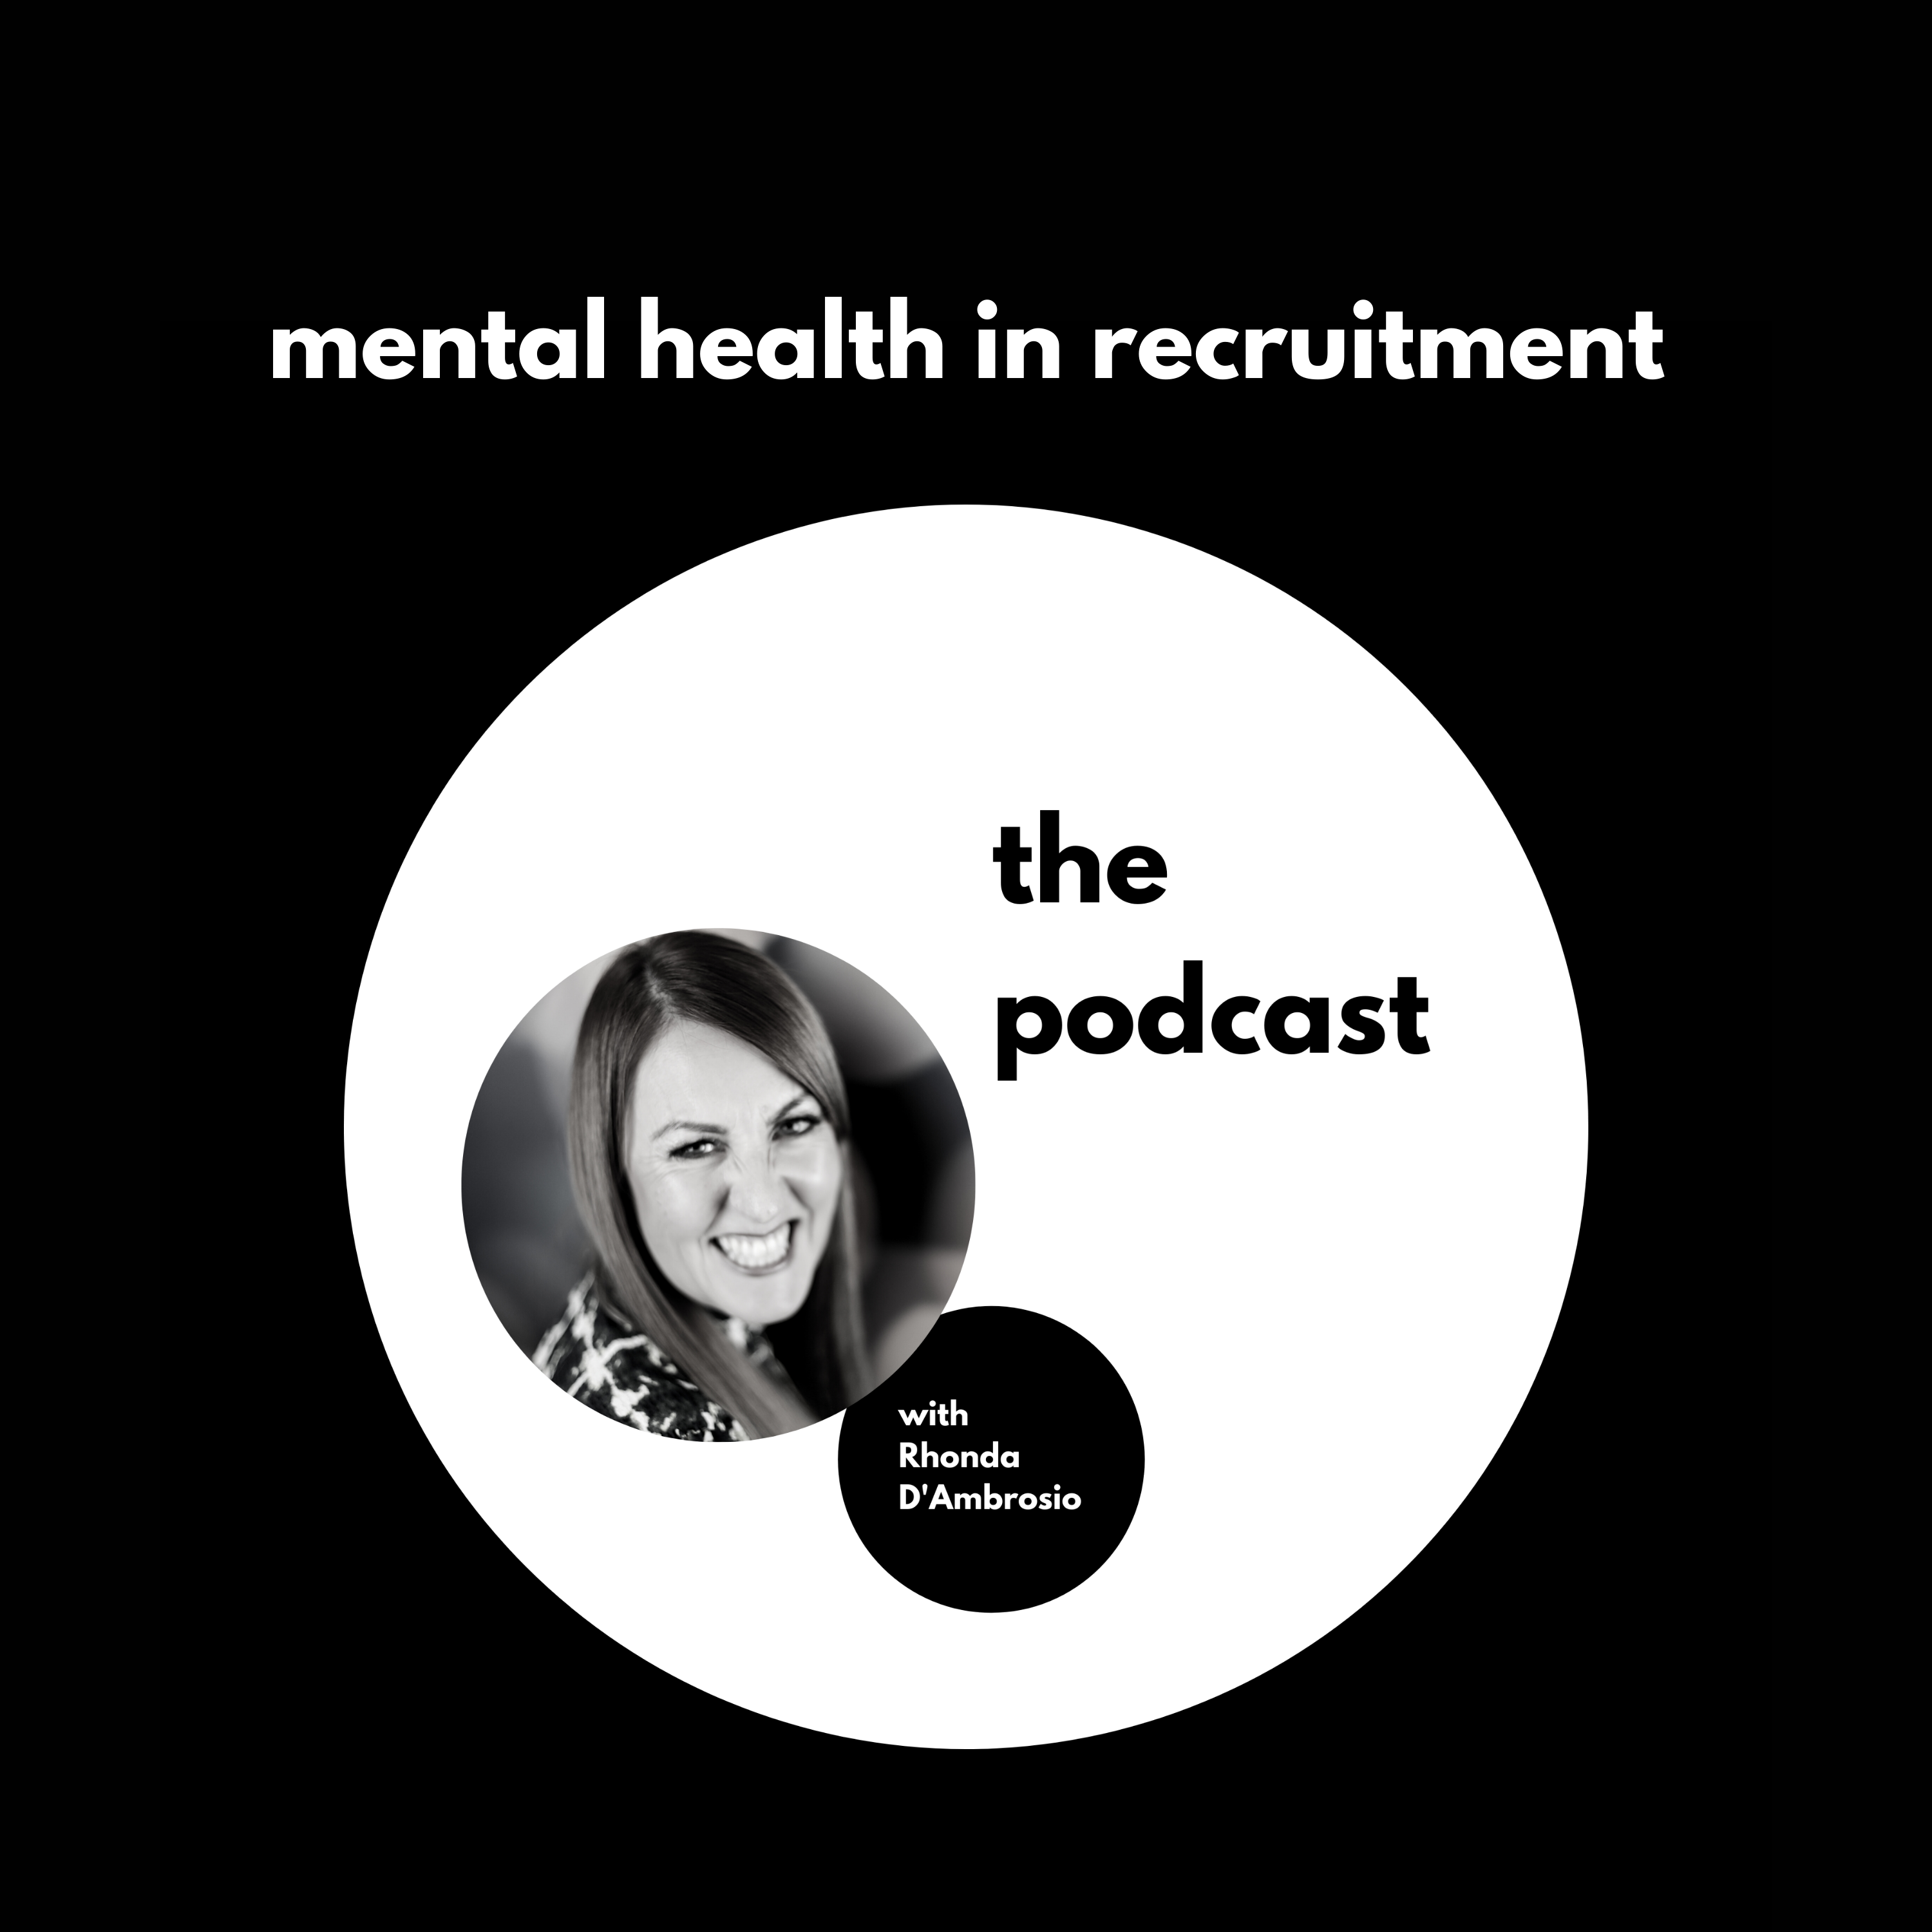 @mhir Mental Health In Recruitment - The Podcast on Spotify Link Thumbnail   Linktree